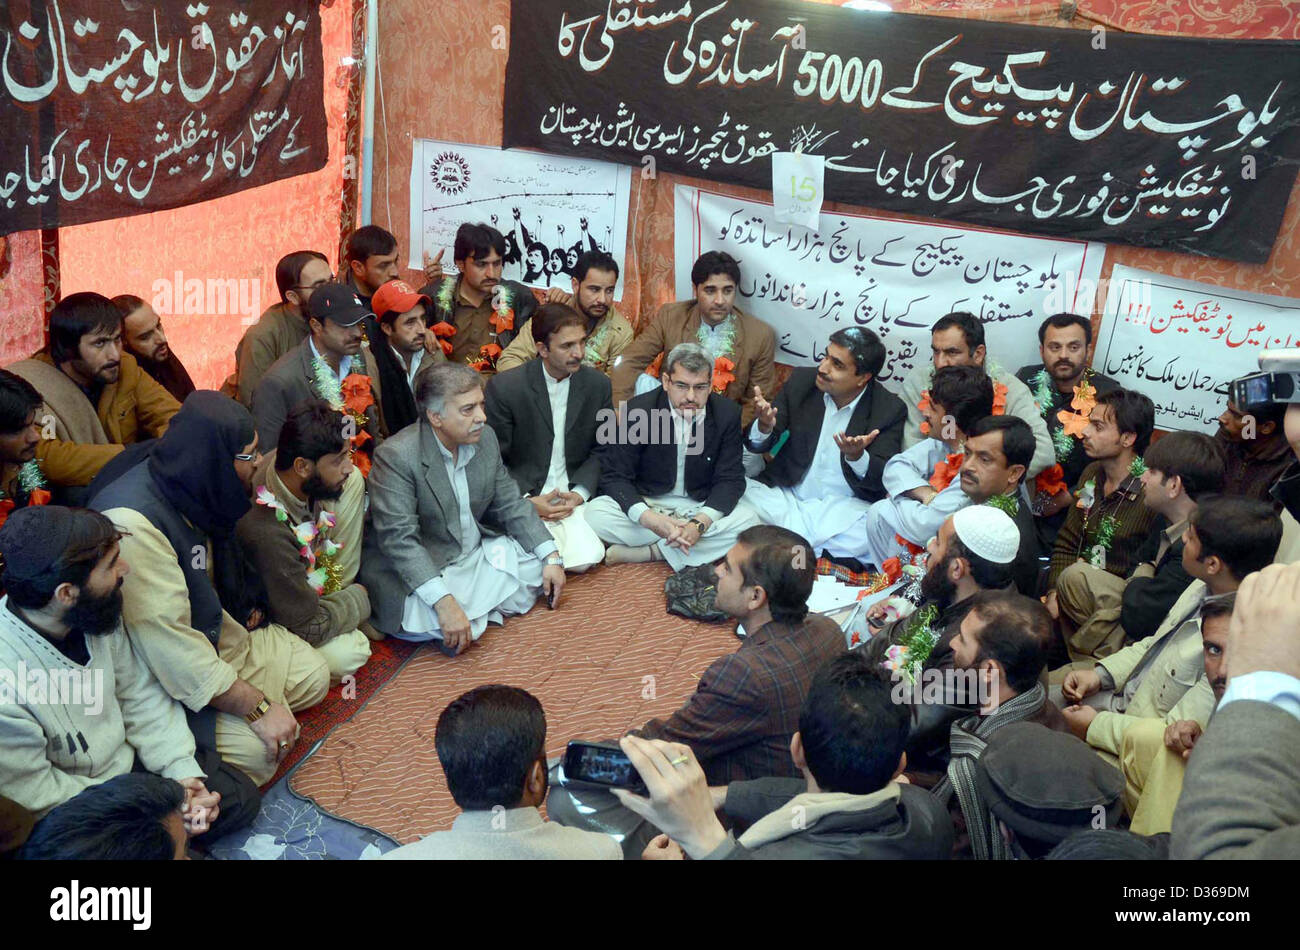 Deputy Commissioner Quetta, Abdul Mansoor Kakar  dialogues with teachers who are sit-in in favor of their demands - Stock Image